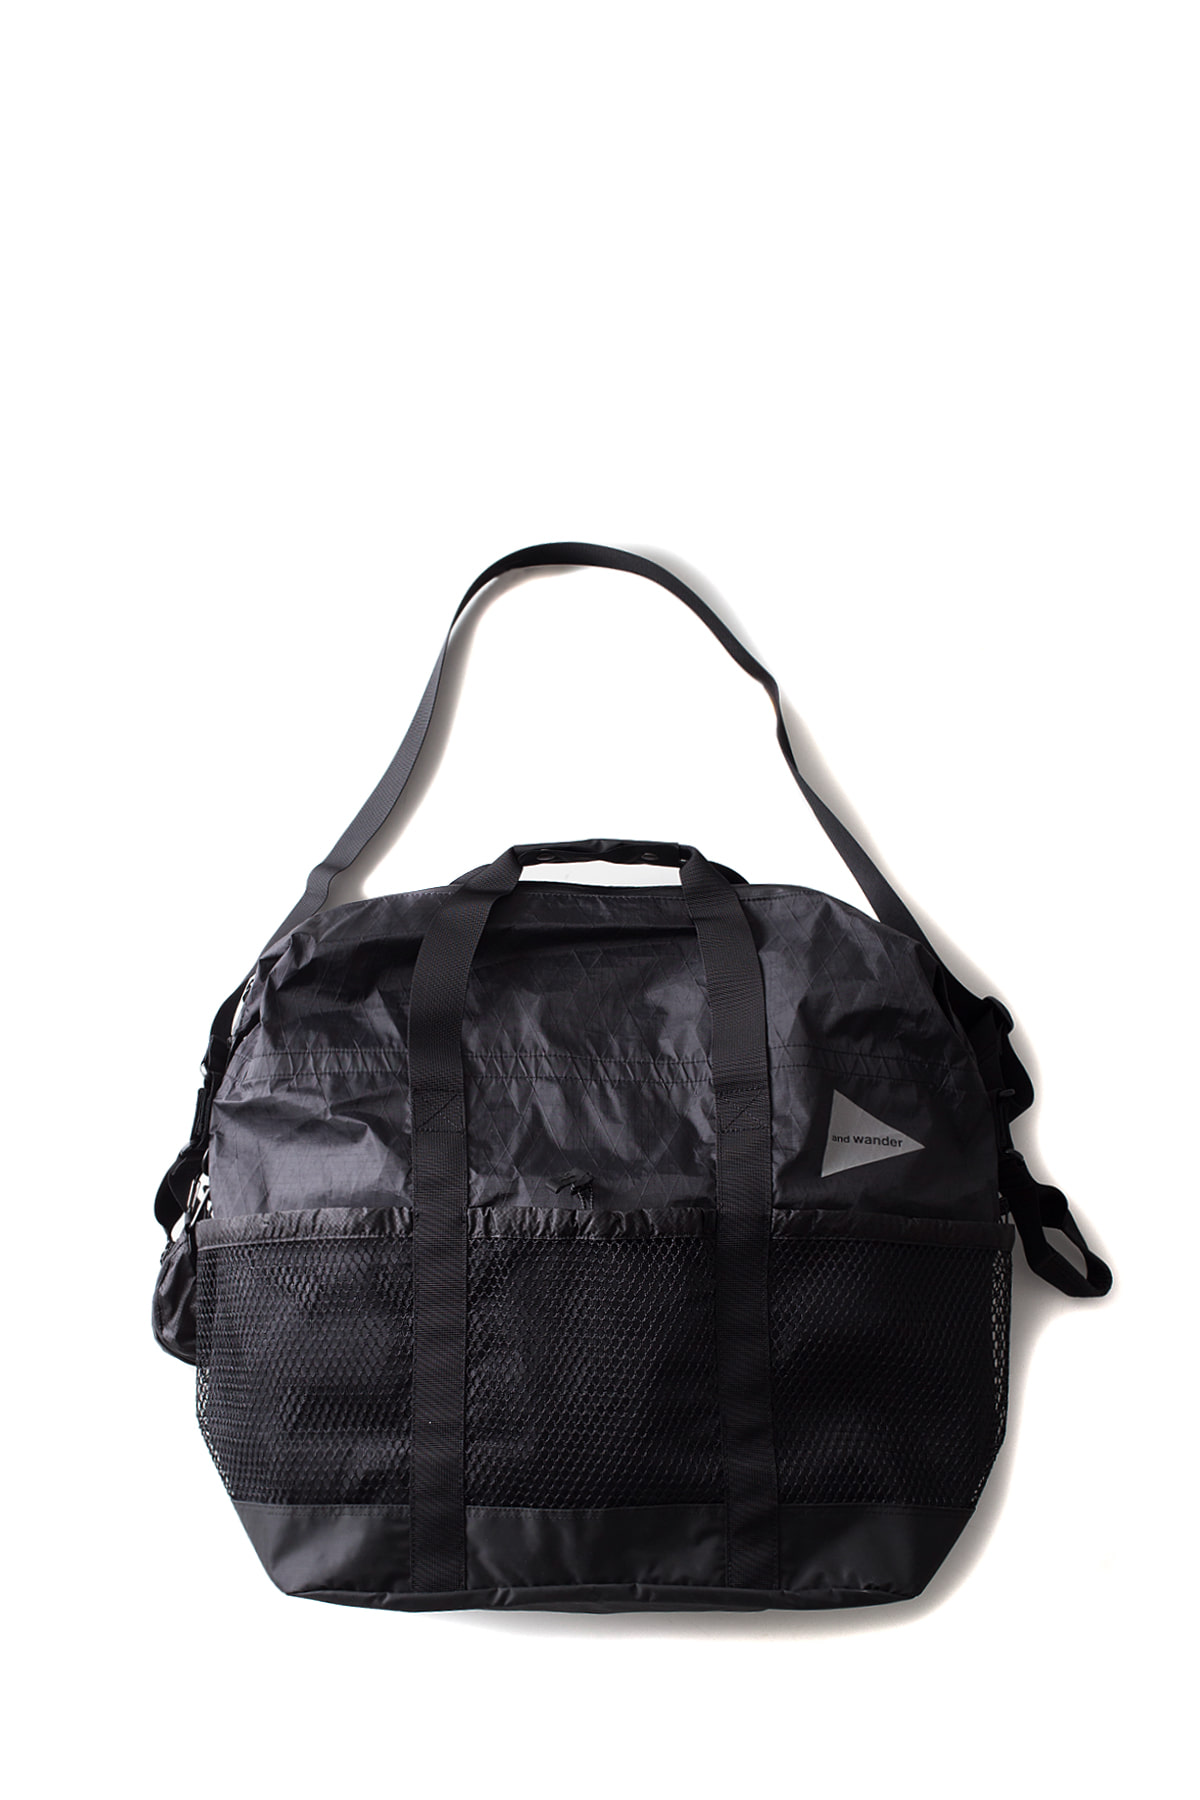 and wander : X-Pac 45L Tote Bag (Black)